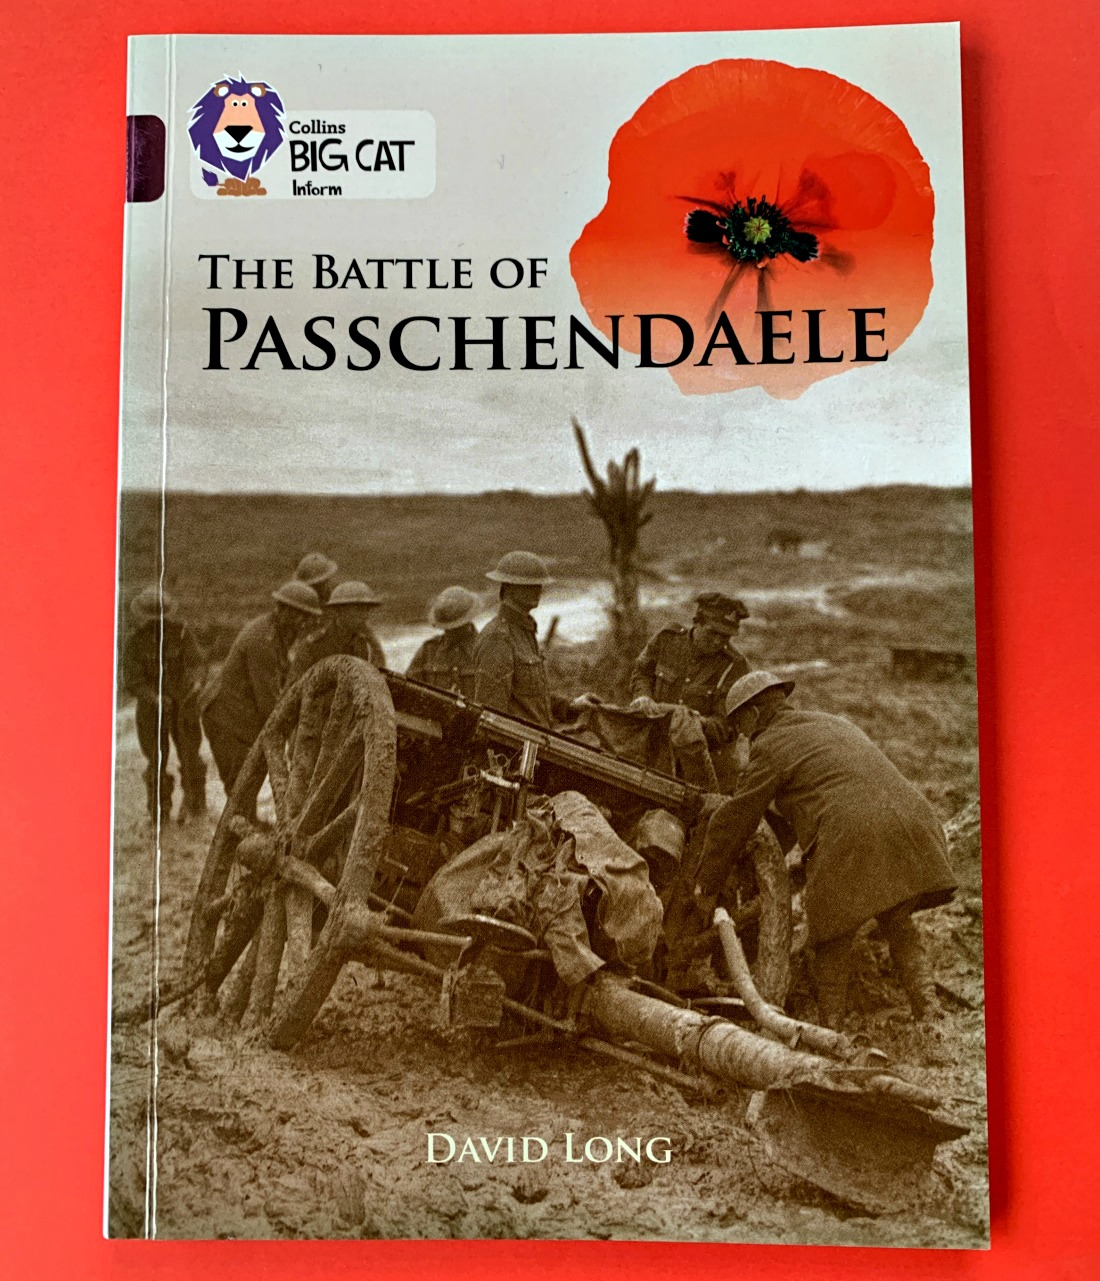 Collins BIG CAT reader The battle of Passchendaele. WW1